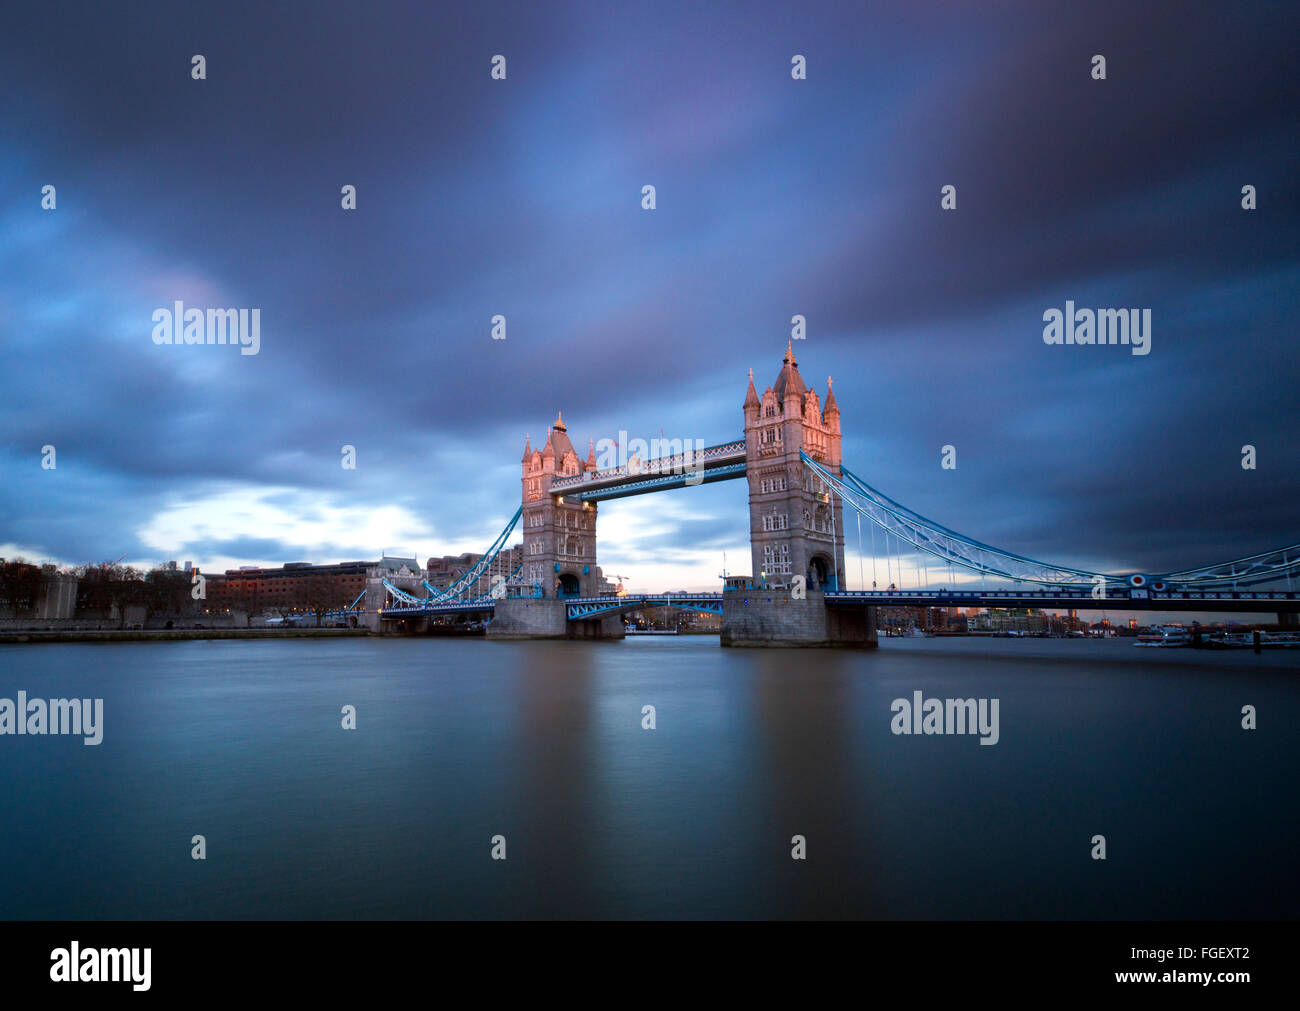 Sunset long exposure on Tower Bridge, London England UK - Stock Image